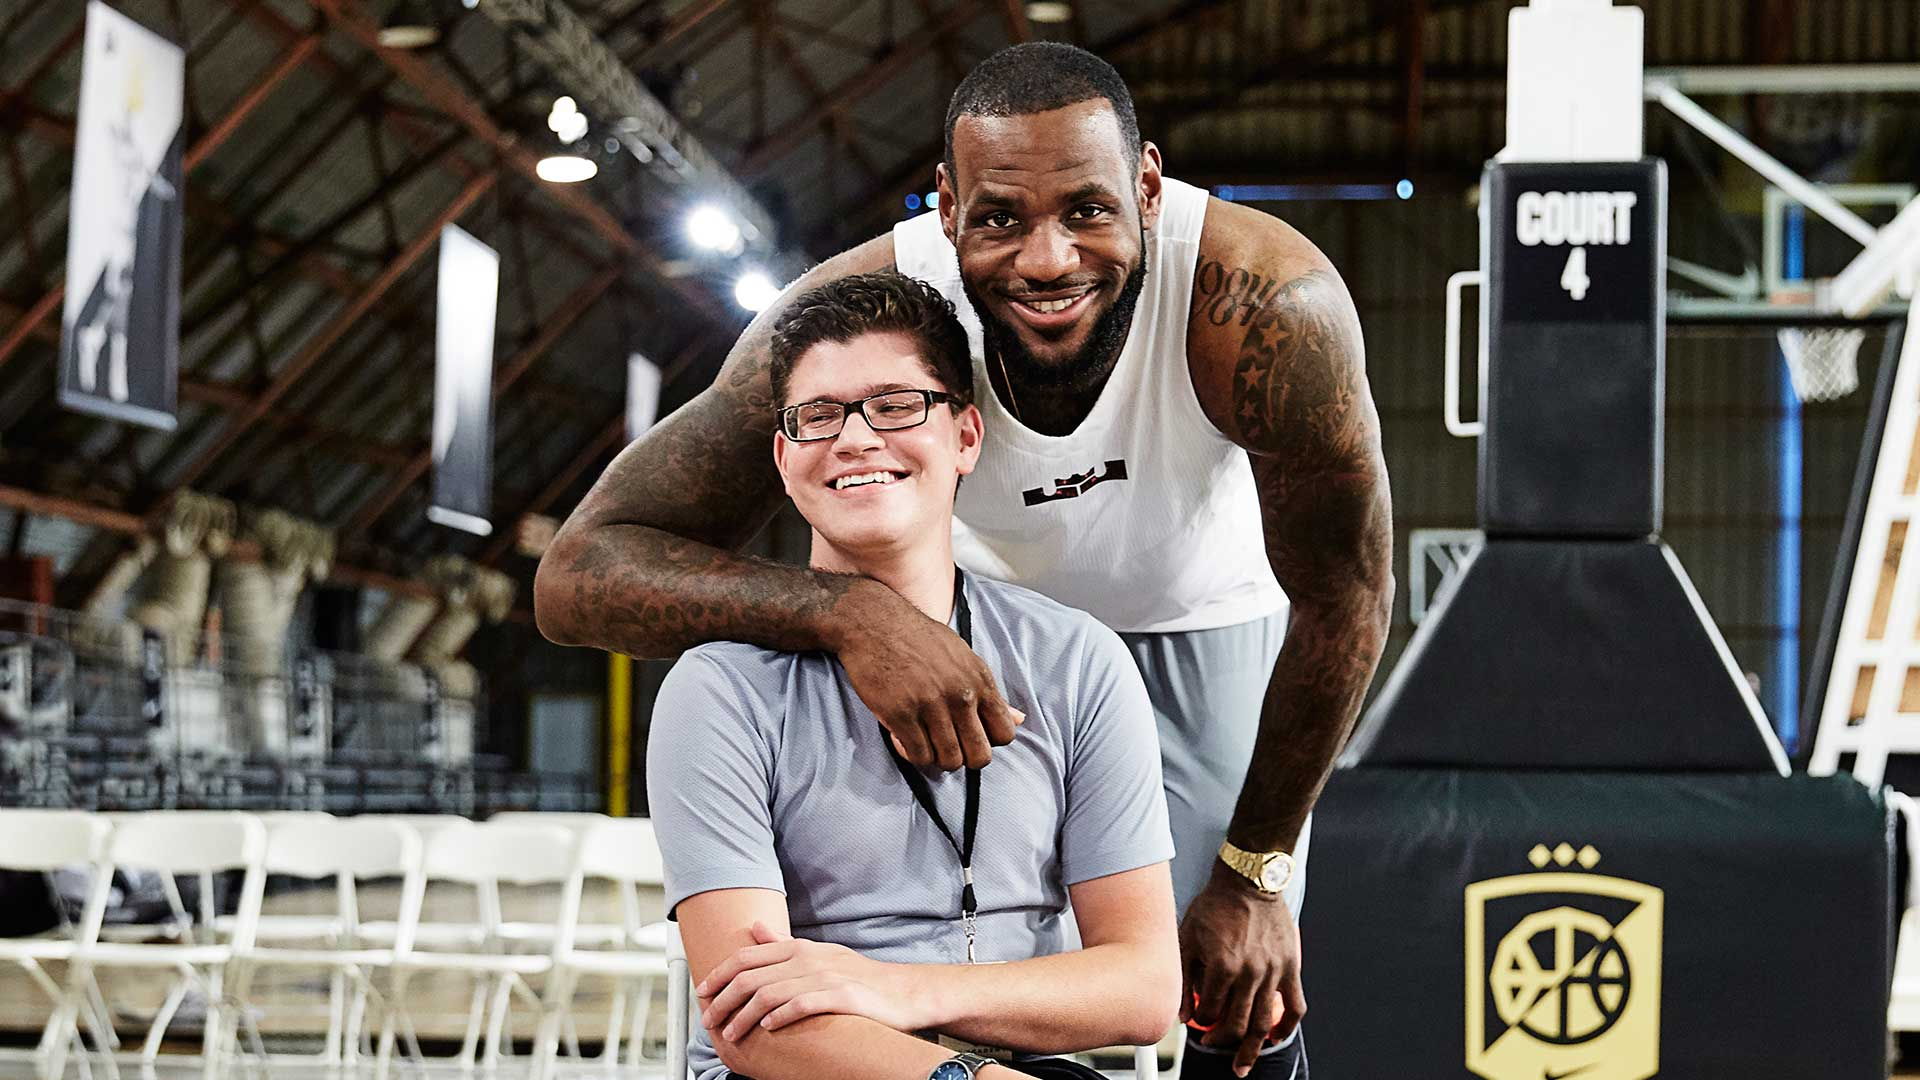 Matthew Walzer and LeBron James